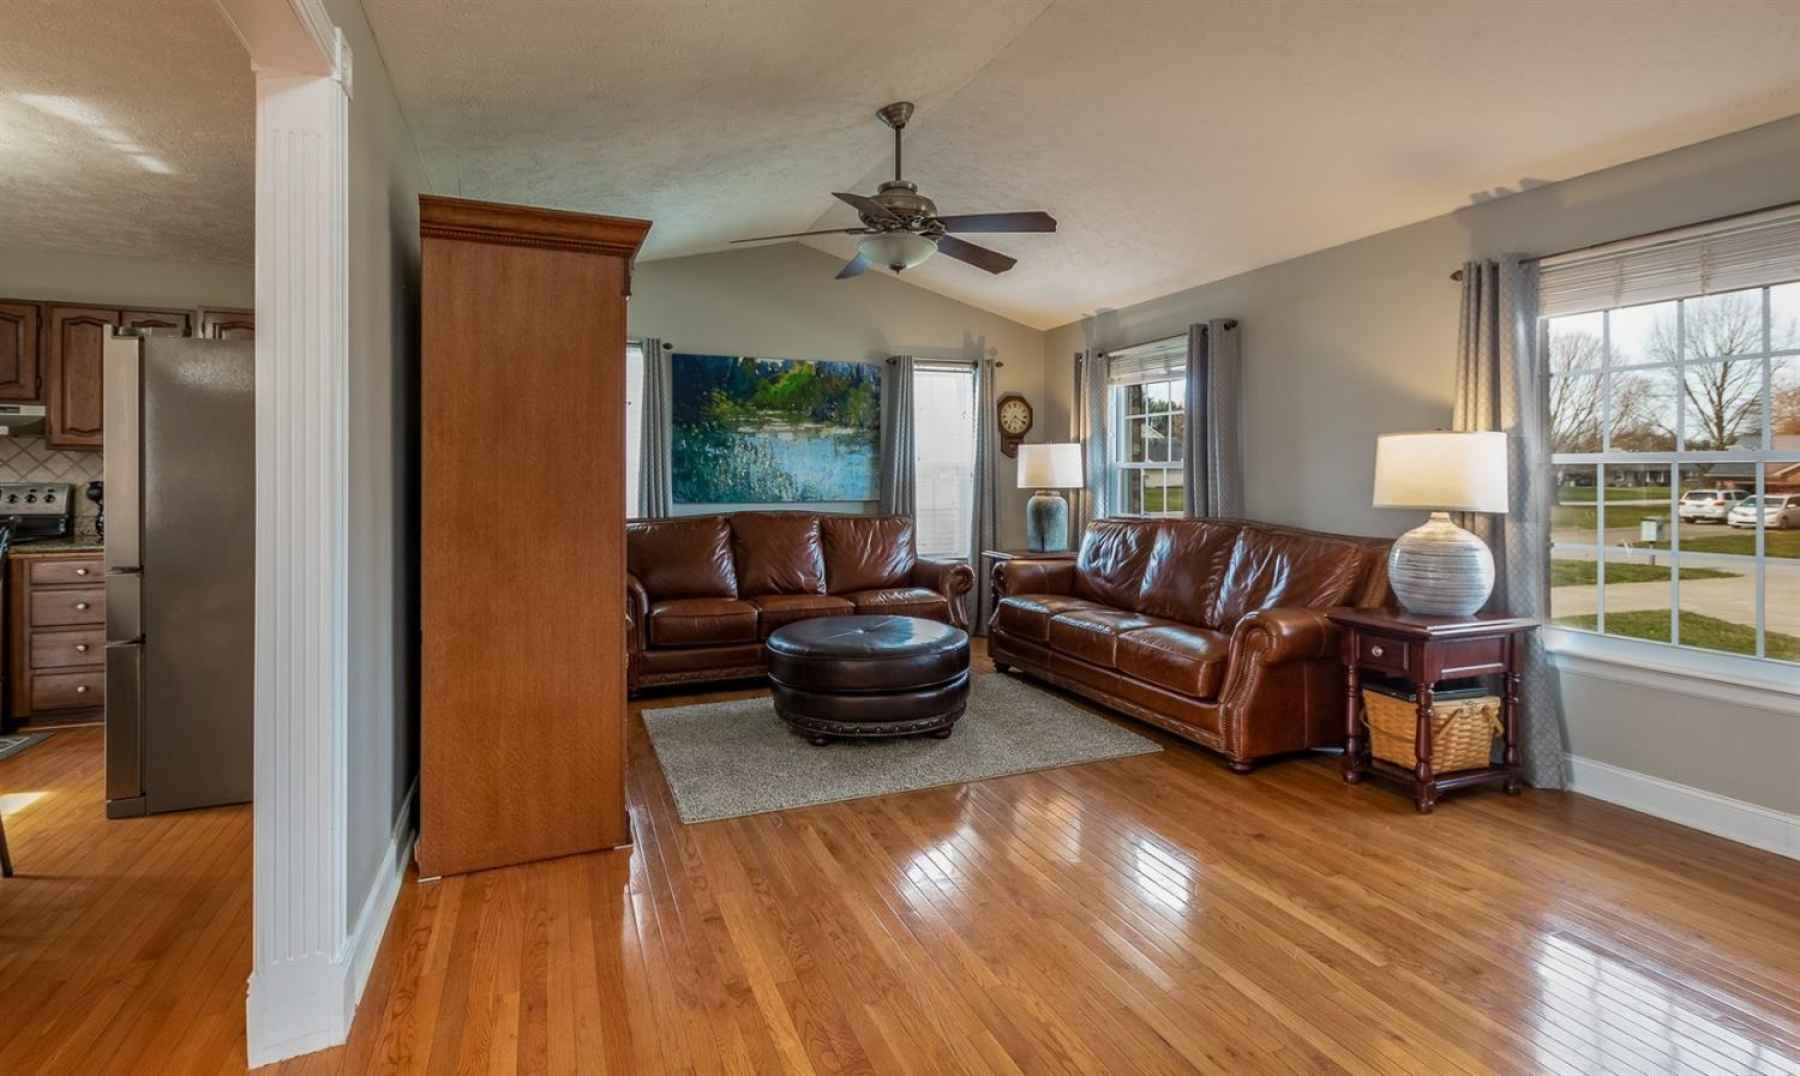 The open floor plan is ideal for entertaining